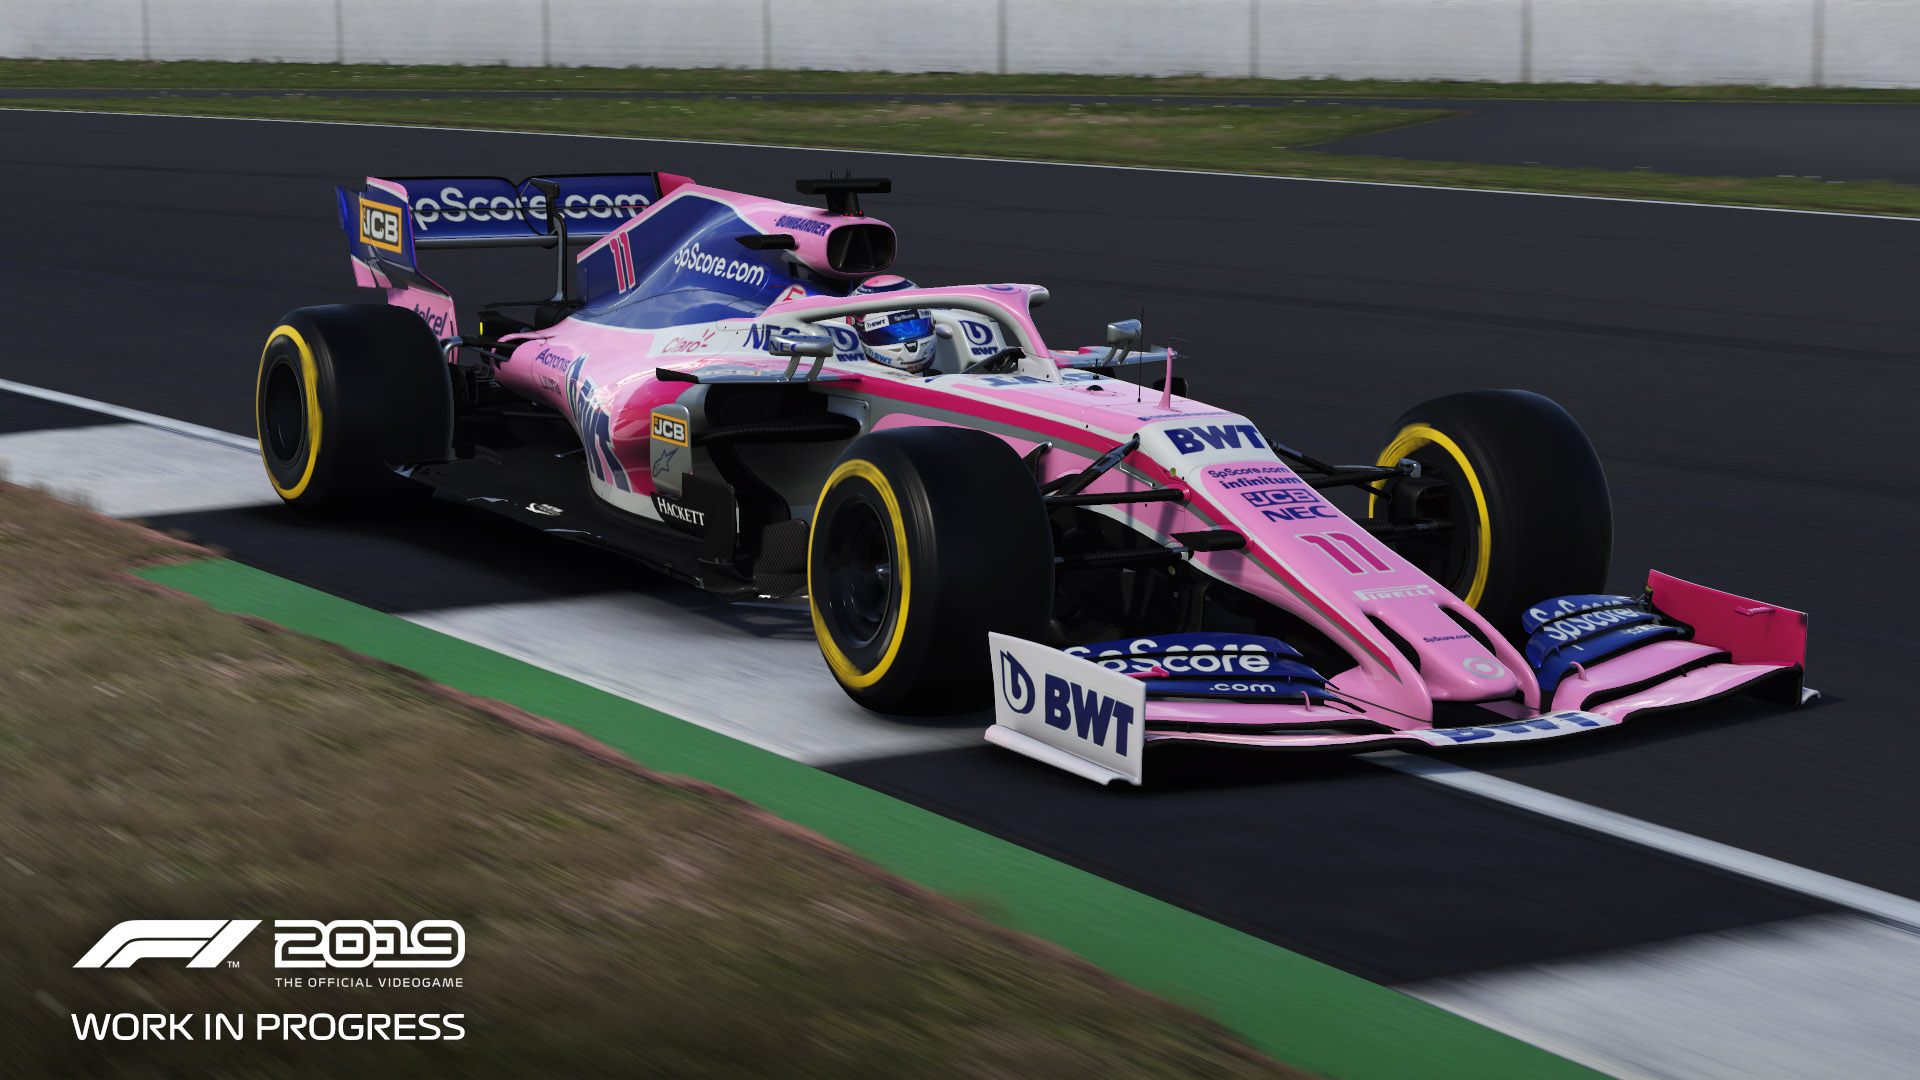 F1 2019: Motion Platforms and DD Wheels Supported - Full